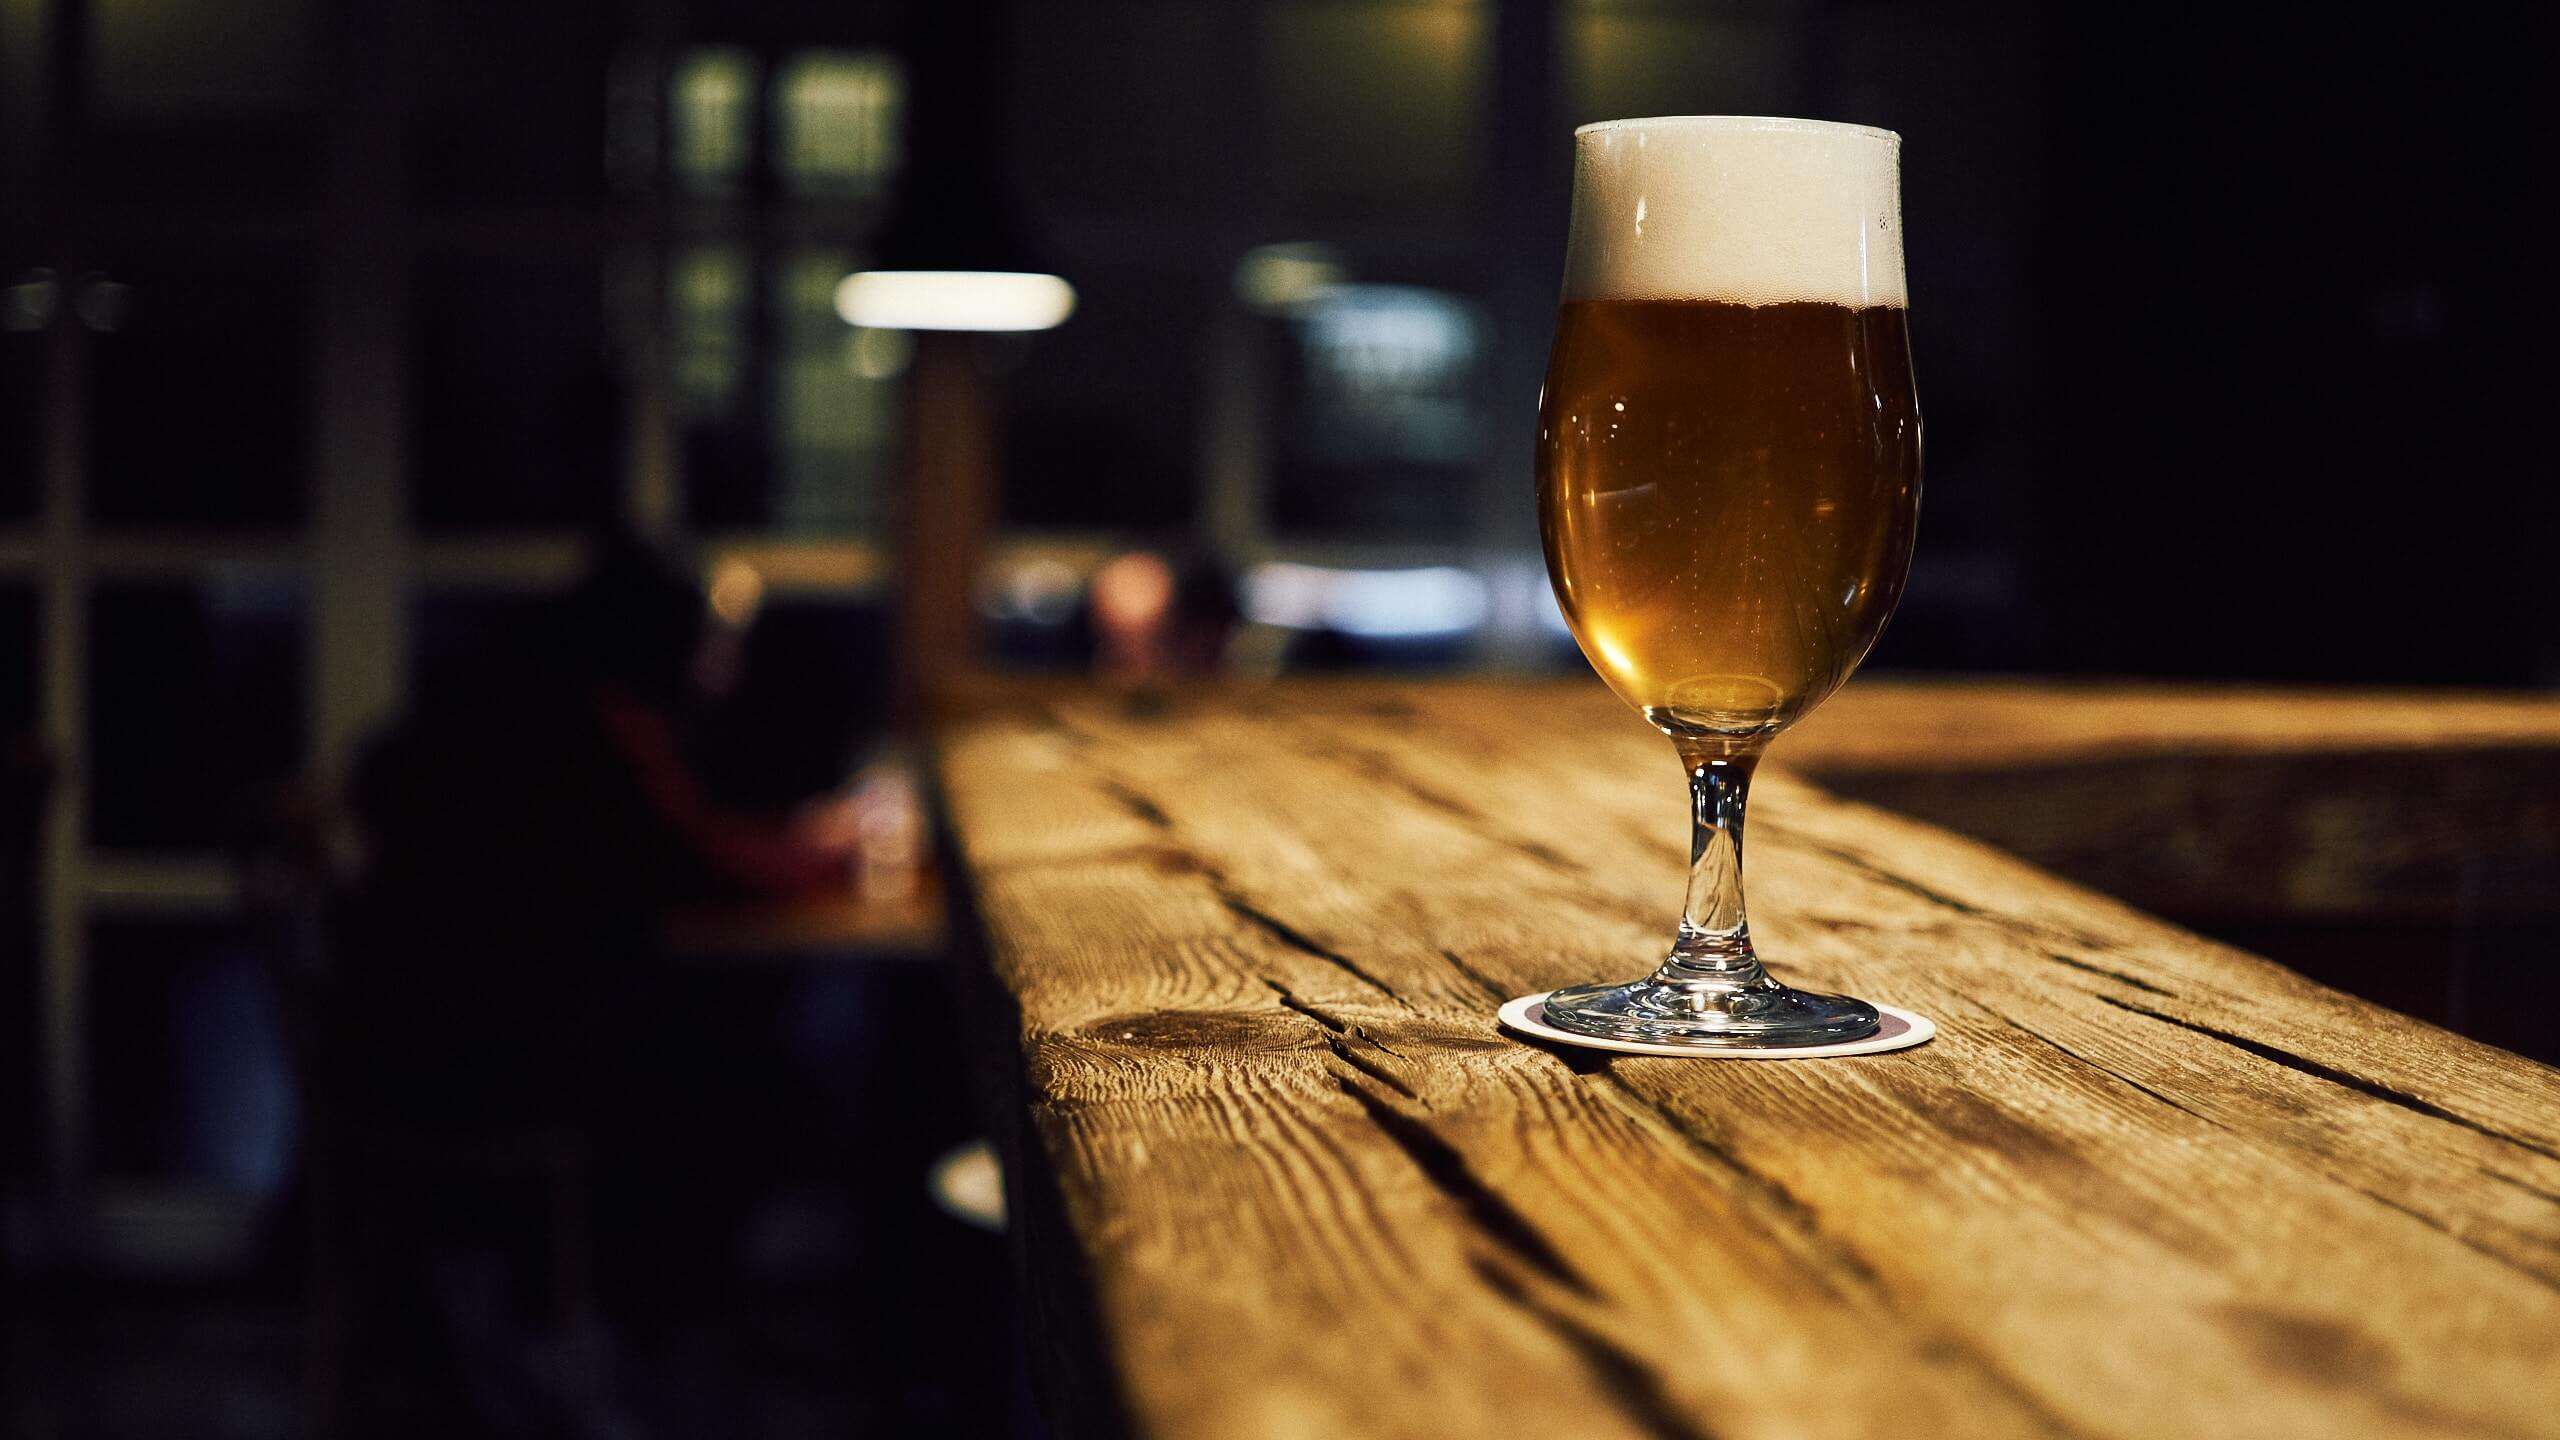 drink craft beer as one of the things to do in ho chi Minh city